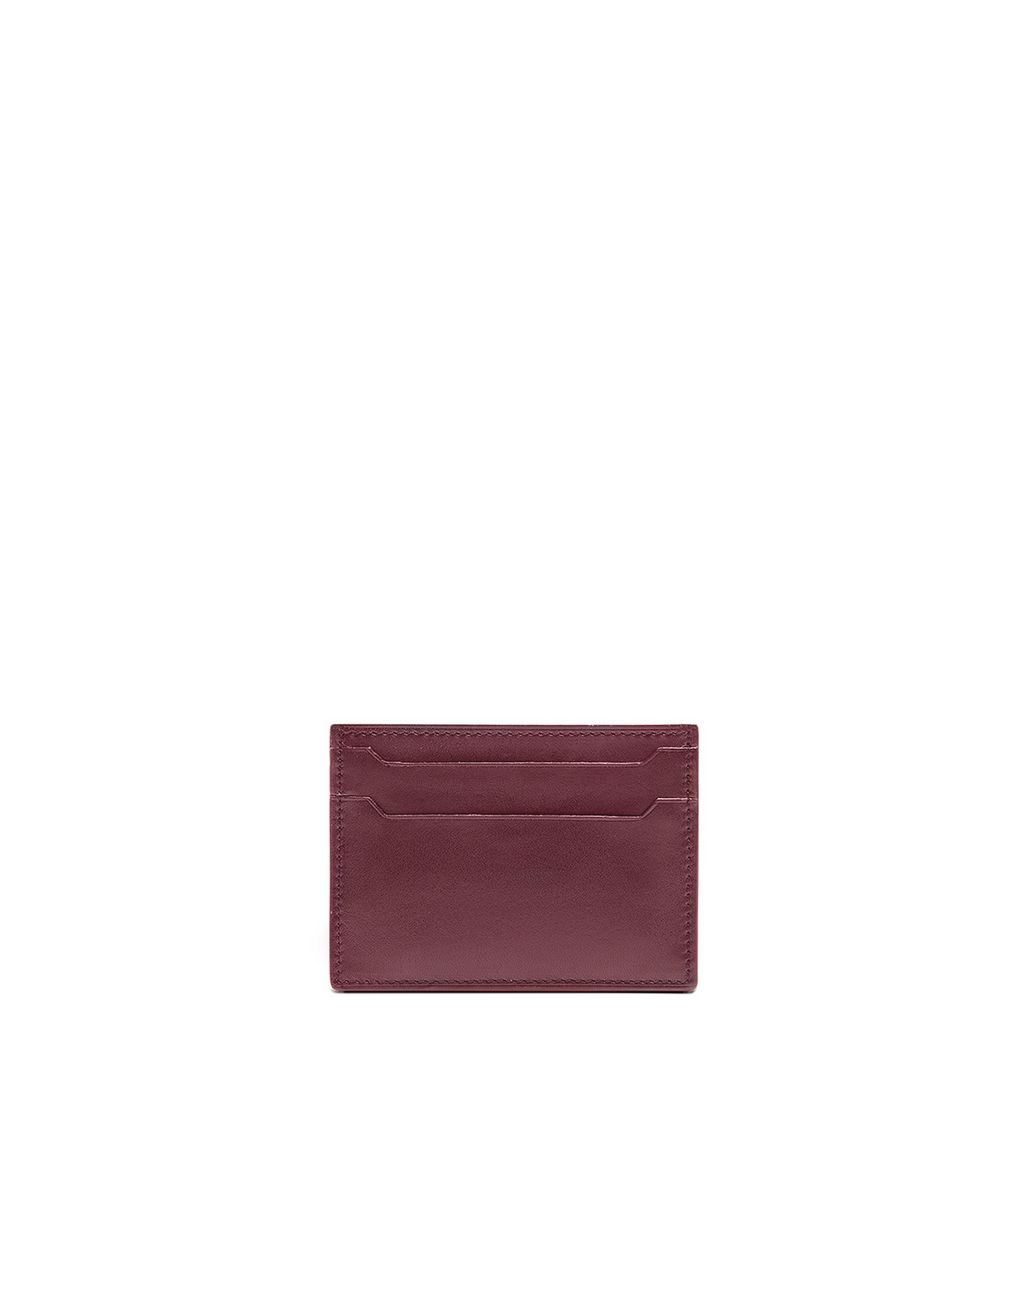 BRIONI Bordeaux Credit Card Holder Leather Goods Man f